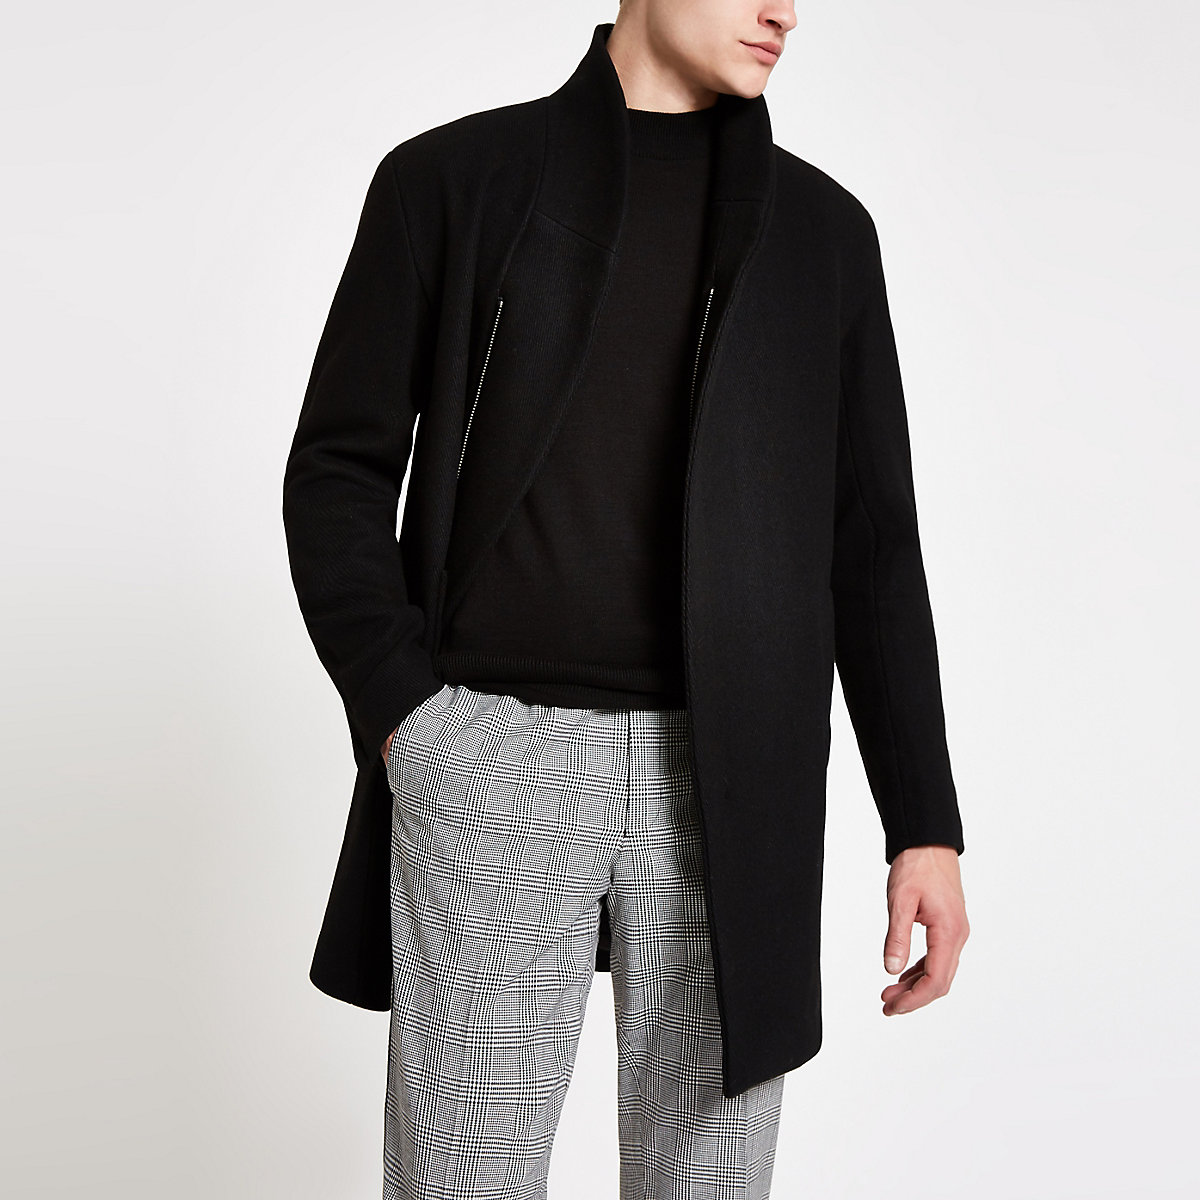 Black Minimum Allston classic coat